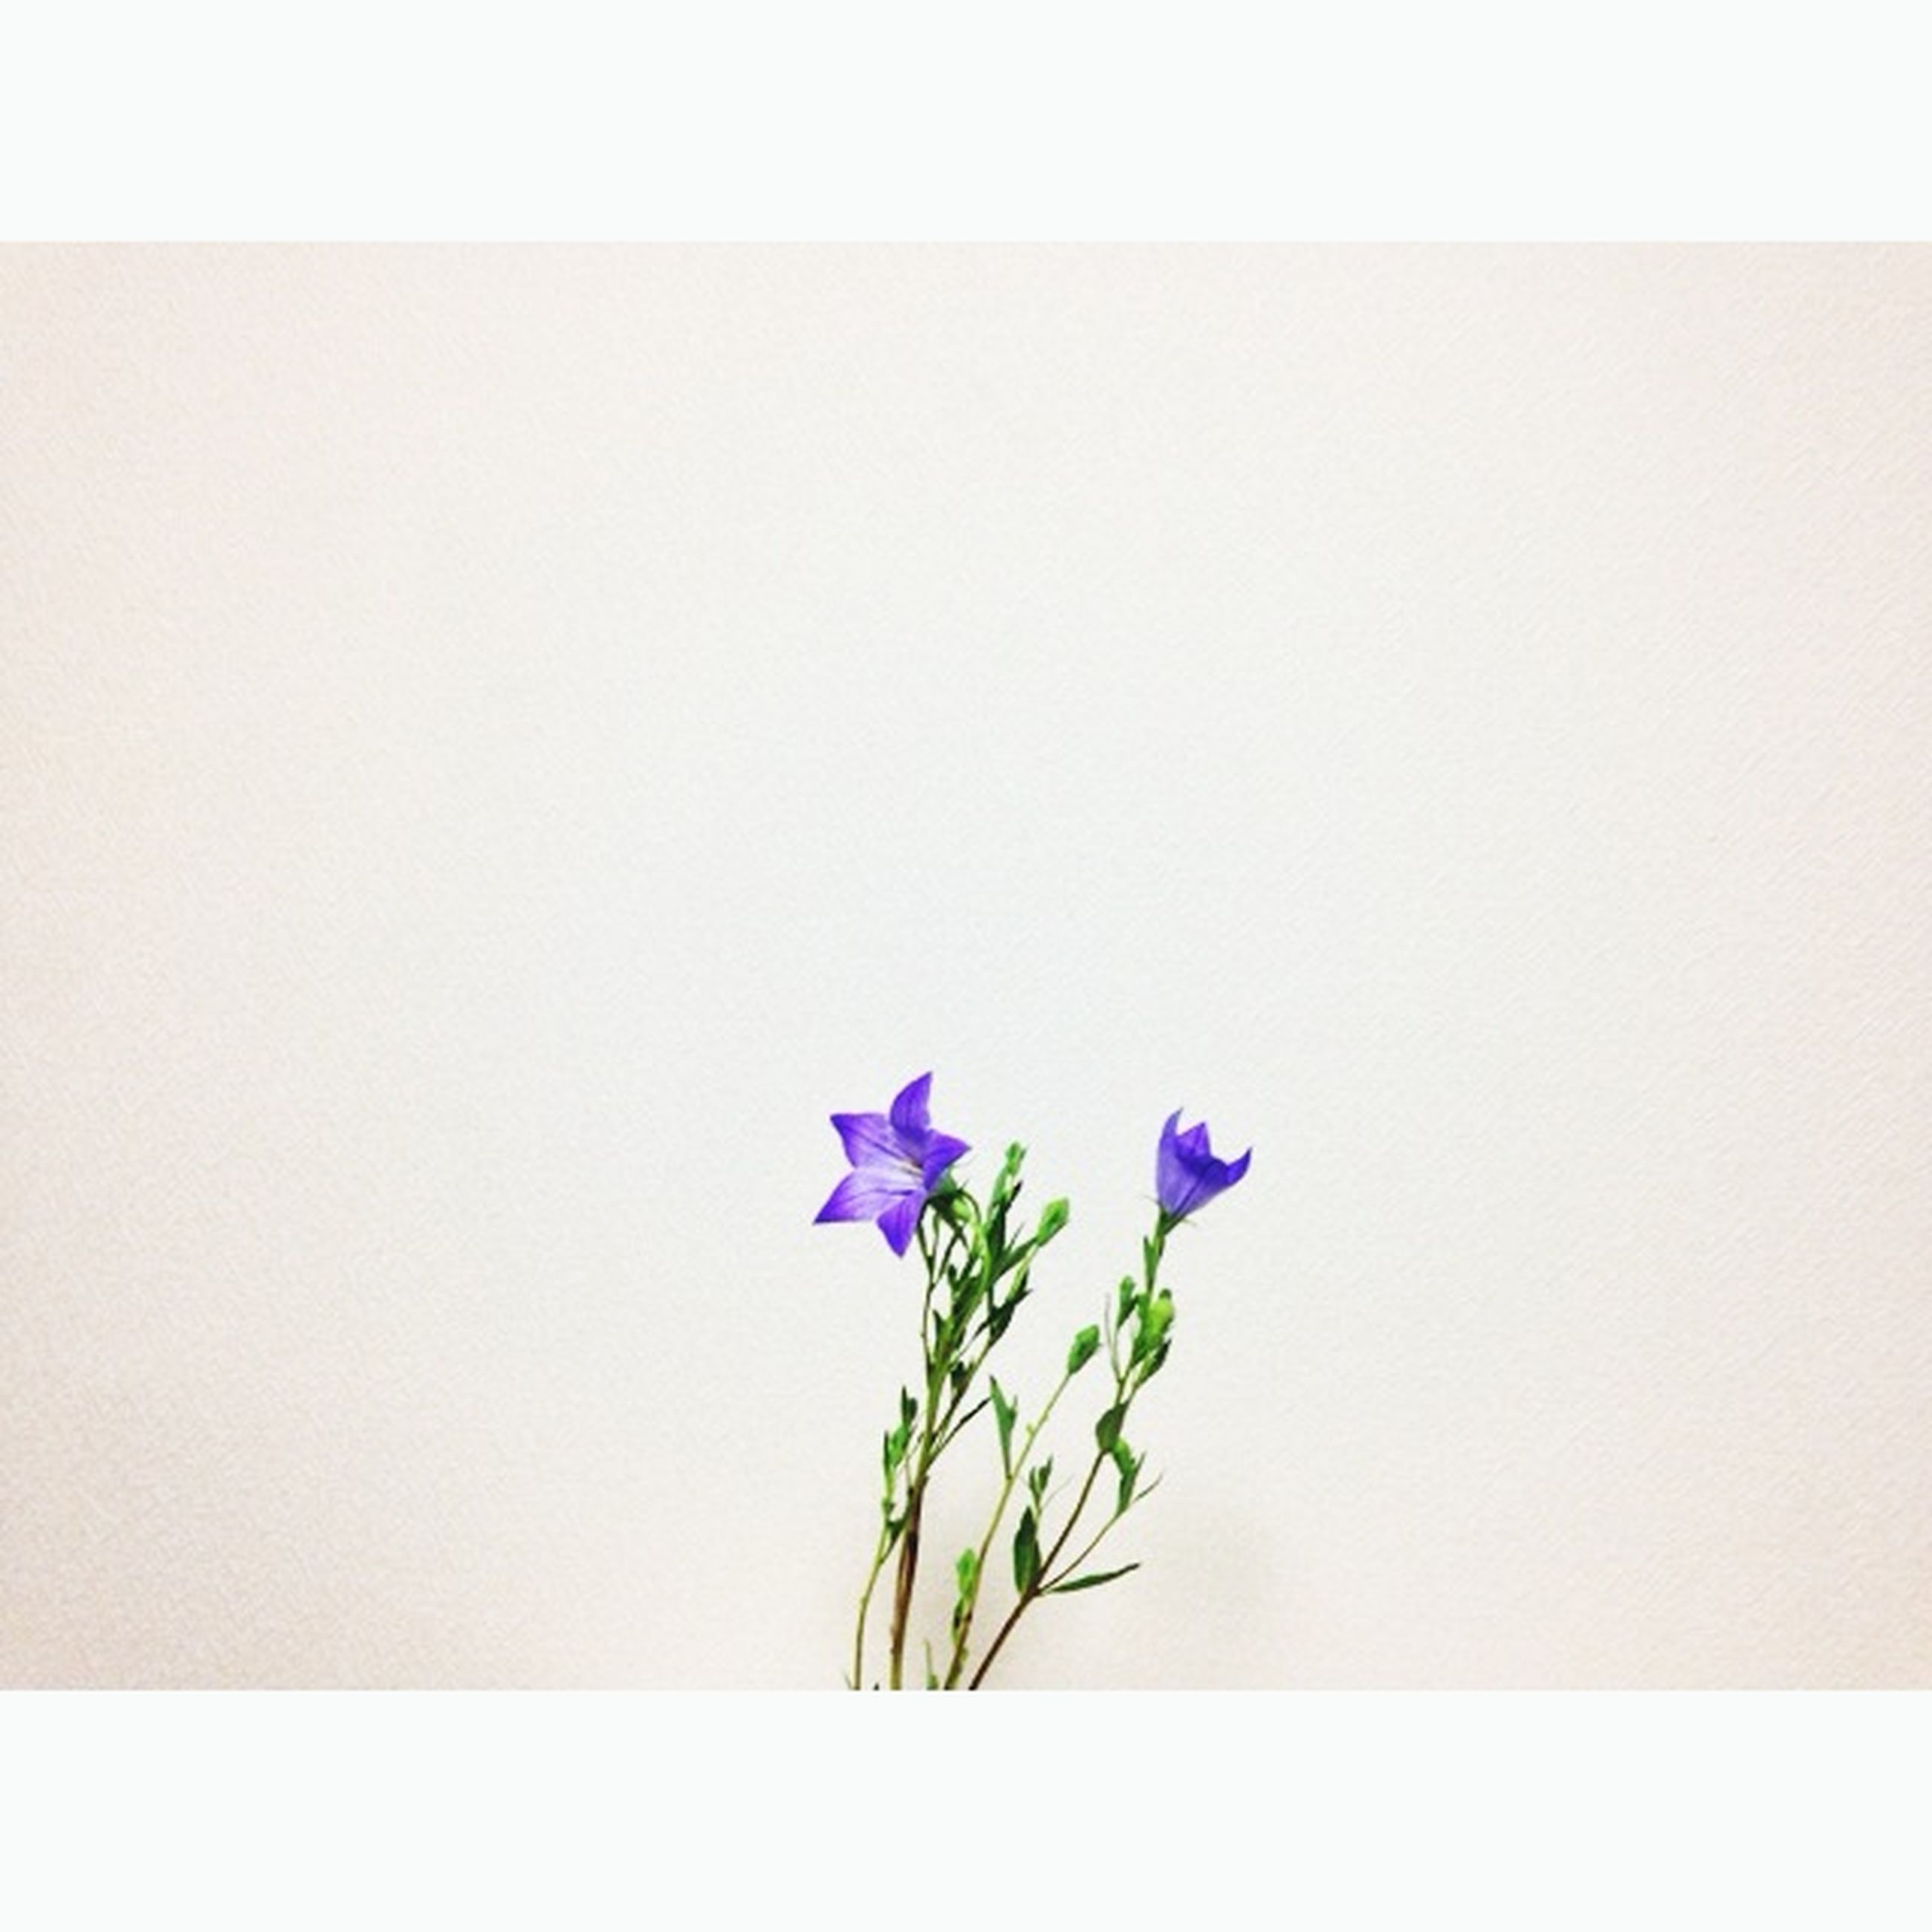 flower, fragility, freshness, petal, flower head, growth, copy space, beauty in nature, plant, stem, transfer print, purple, nature, auto post production filter, blooming, close-up, leaf, blossom, in bloom, blue